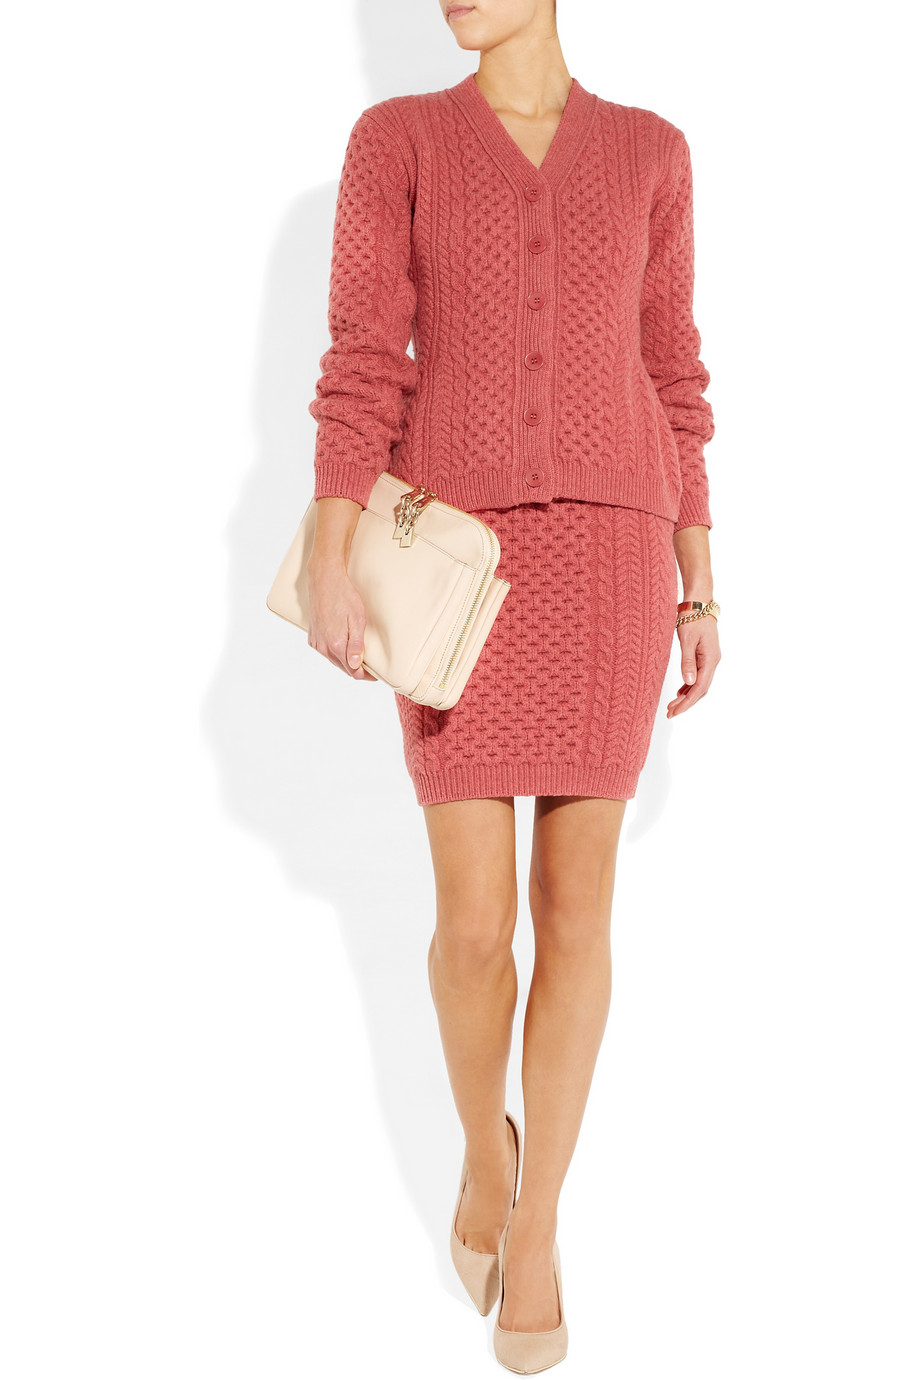 Stella mccartney Cable Knit Wool Skirt in Red